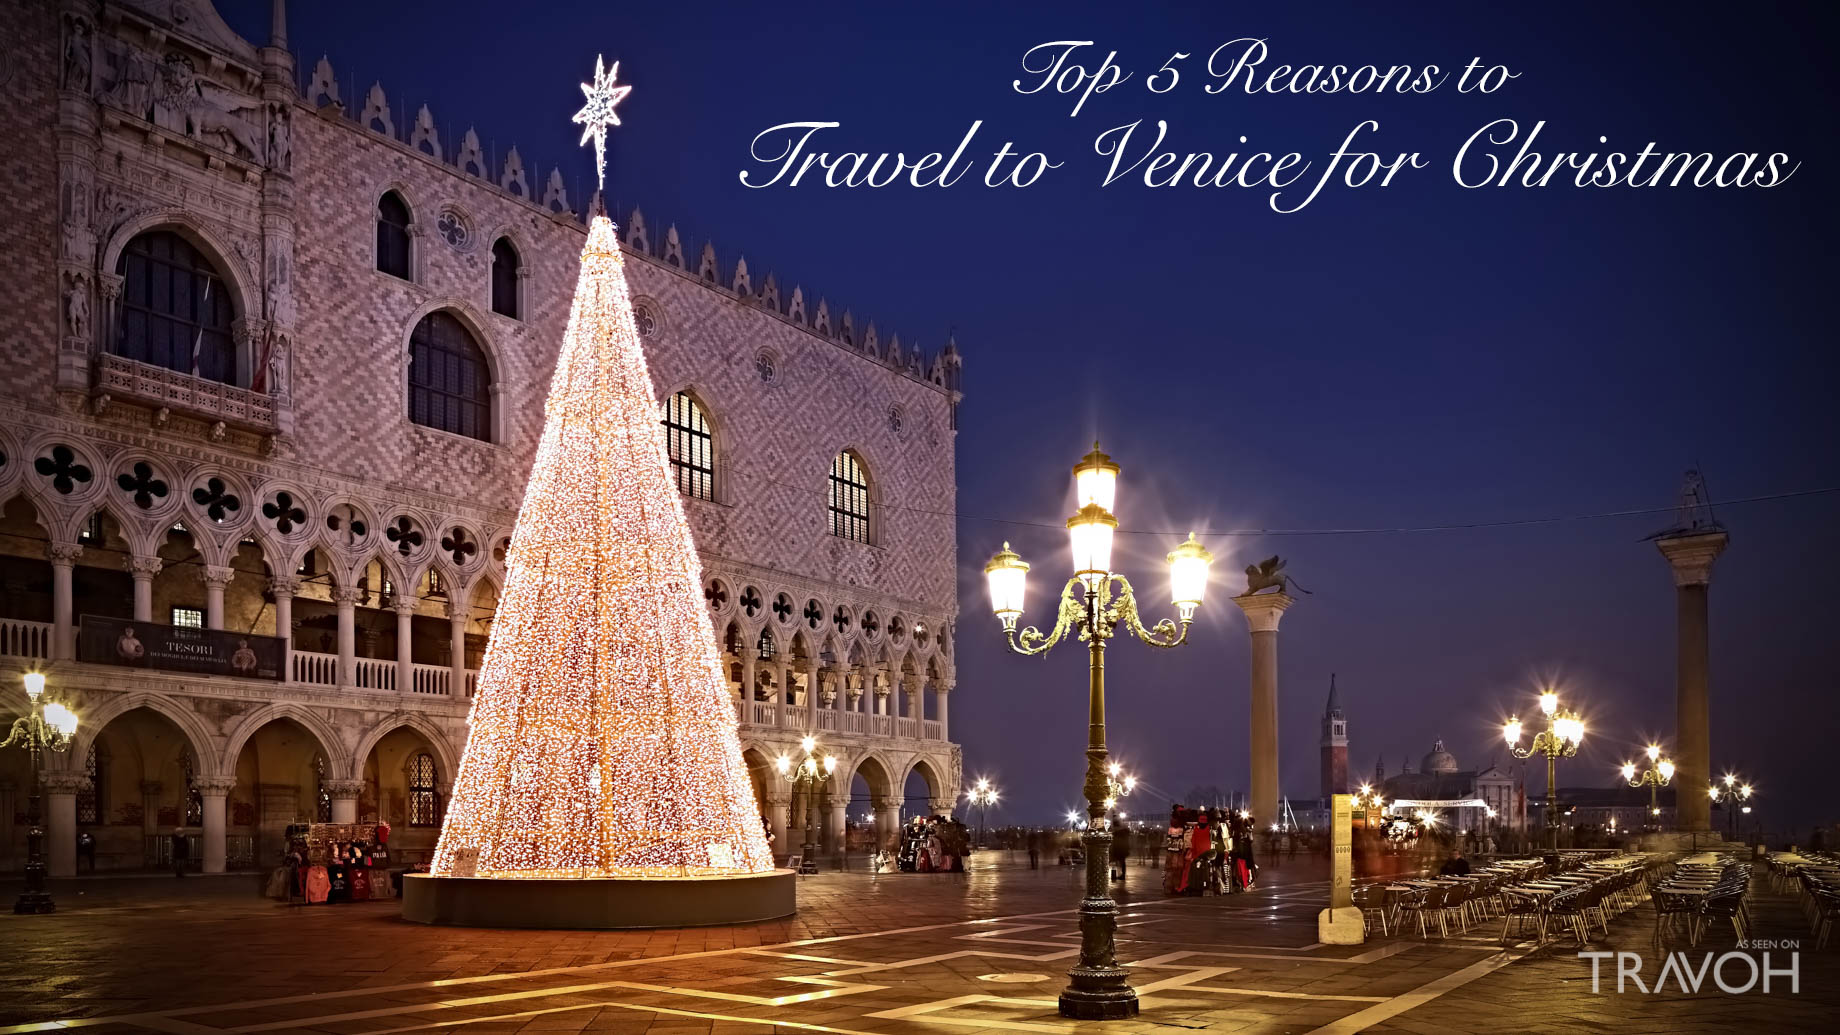 Top 5 Reasons to Travel to Venice for Christmas